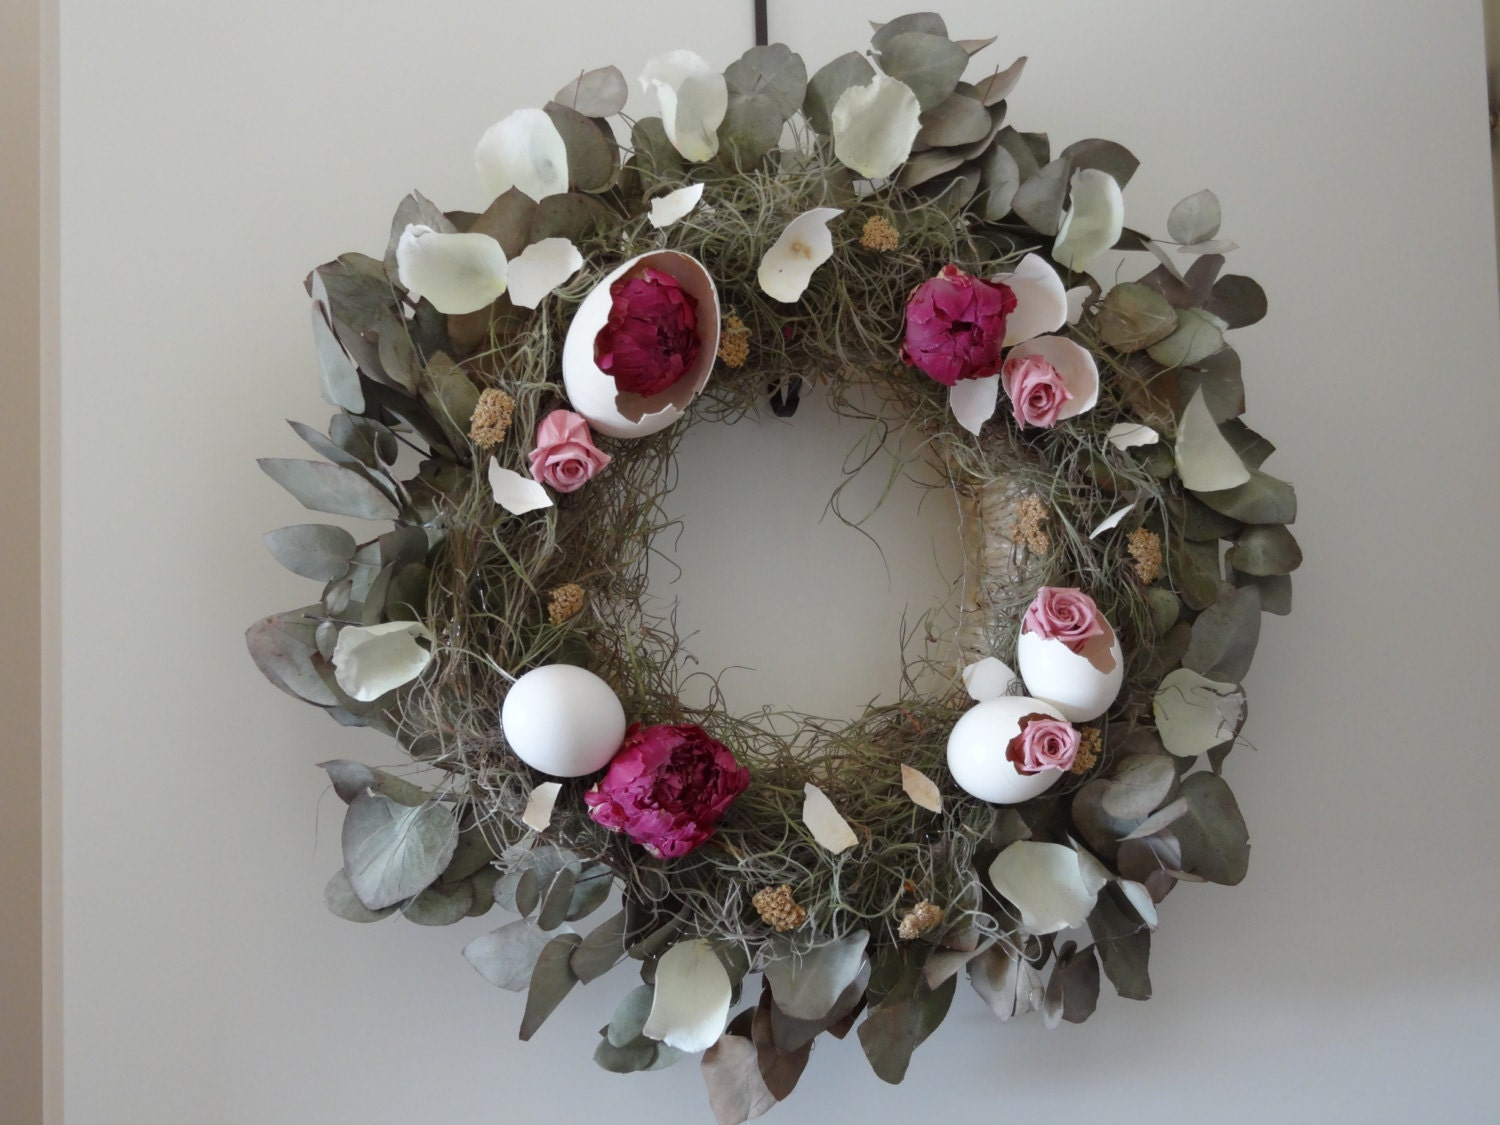 Birth Of Flowers Wreath- Preserved Peony Wreath- Spring Wreath-Easter Wreath- Eggs Wreath- Mother's Day Wreath- Hanging Wreath - SteliosArt